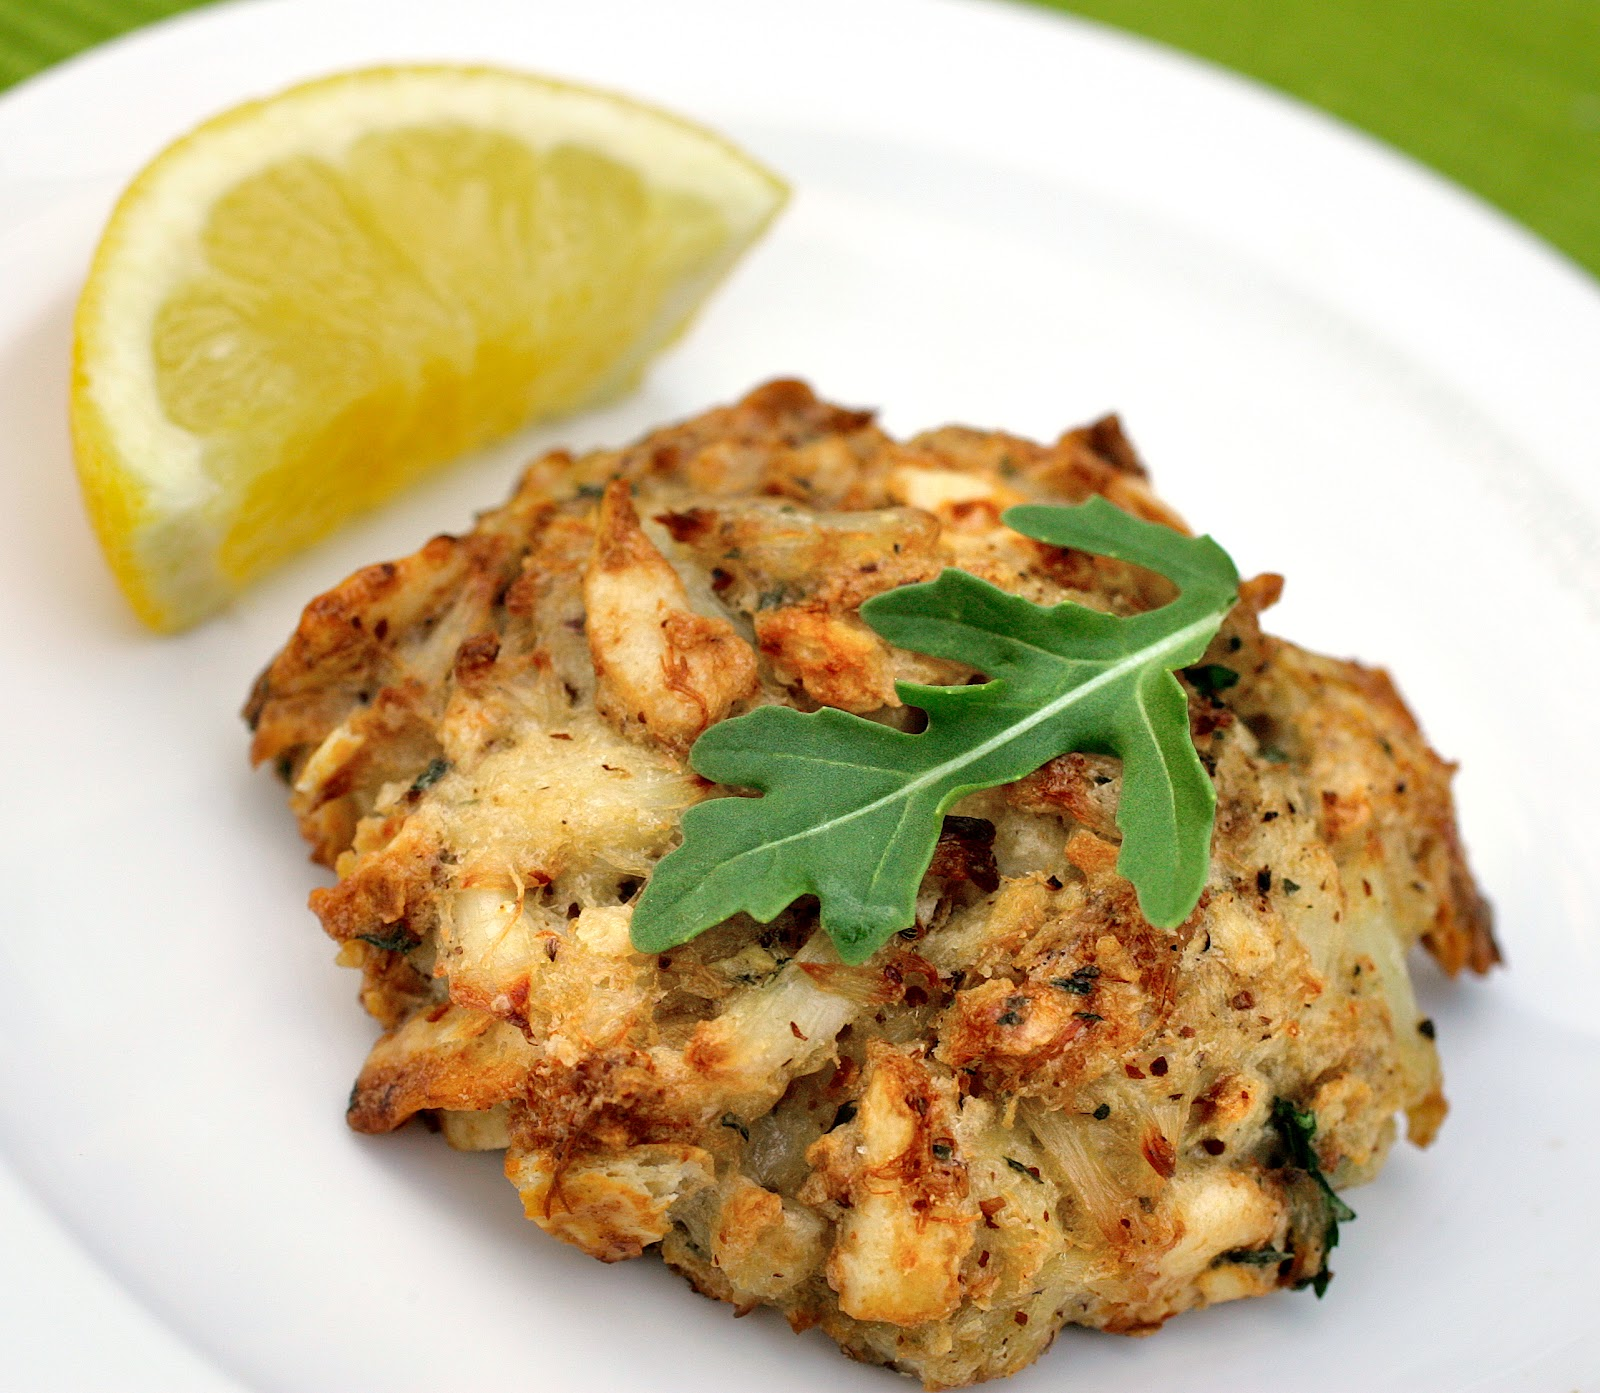 Jumbo Lump Crab Cakes Recipe Maryland lump crab cakes with